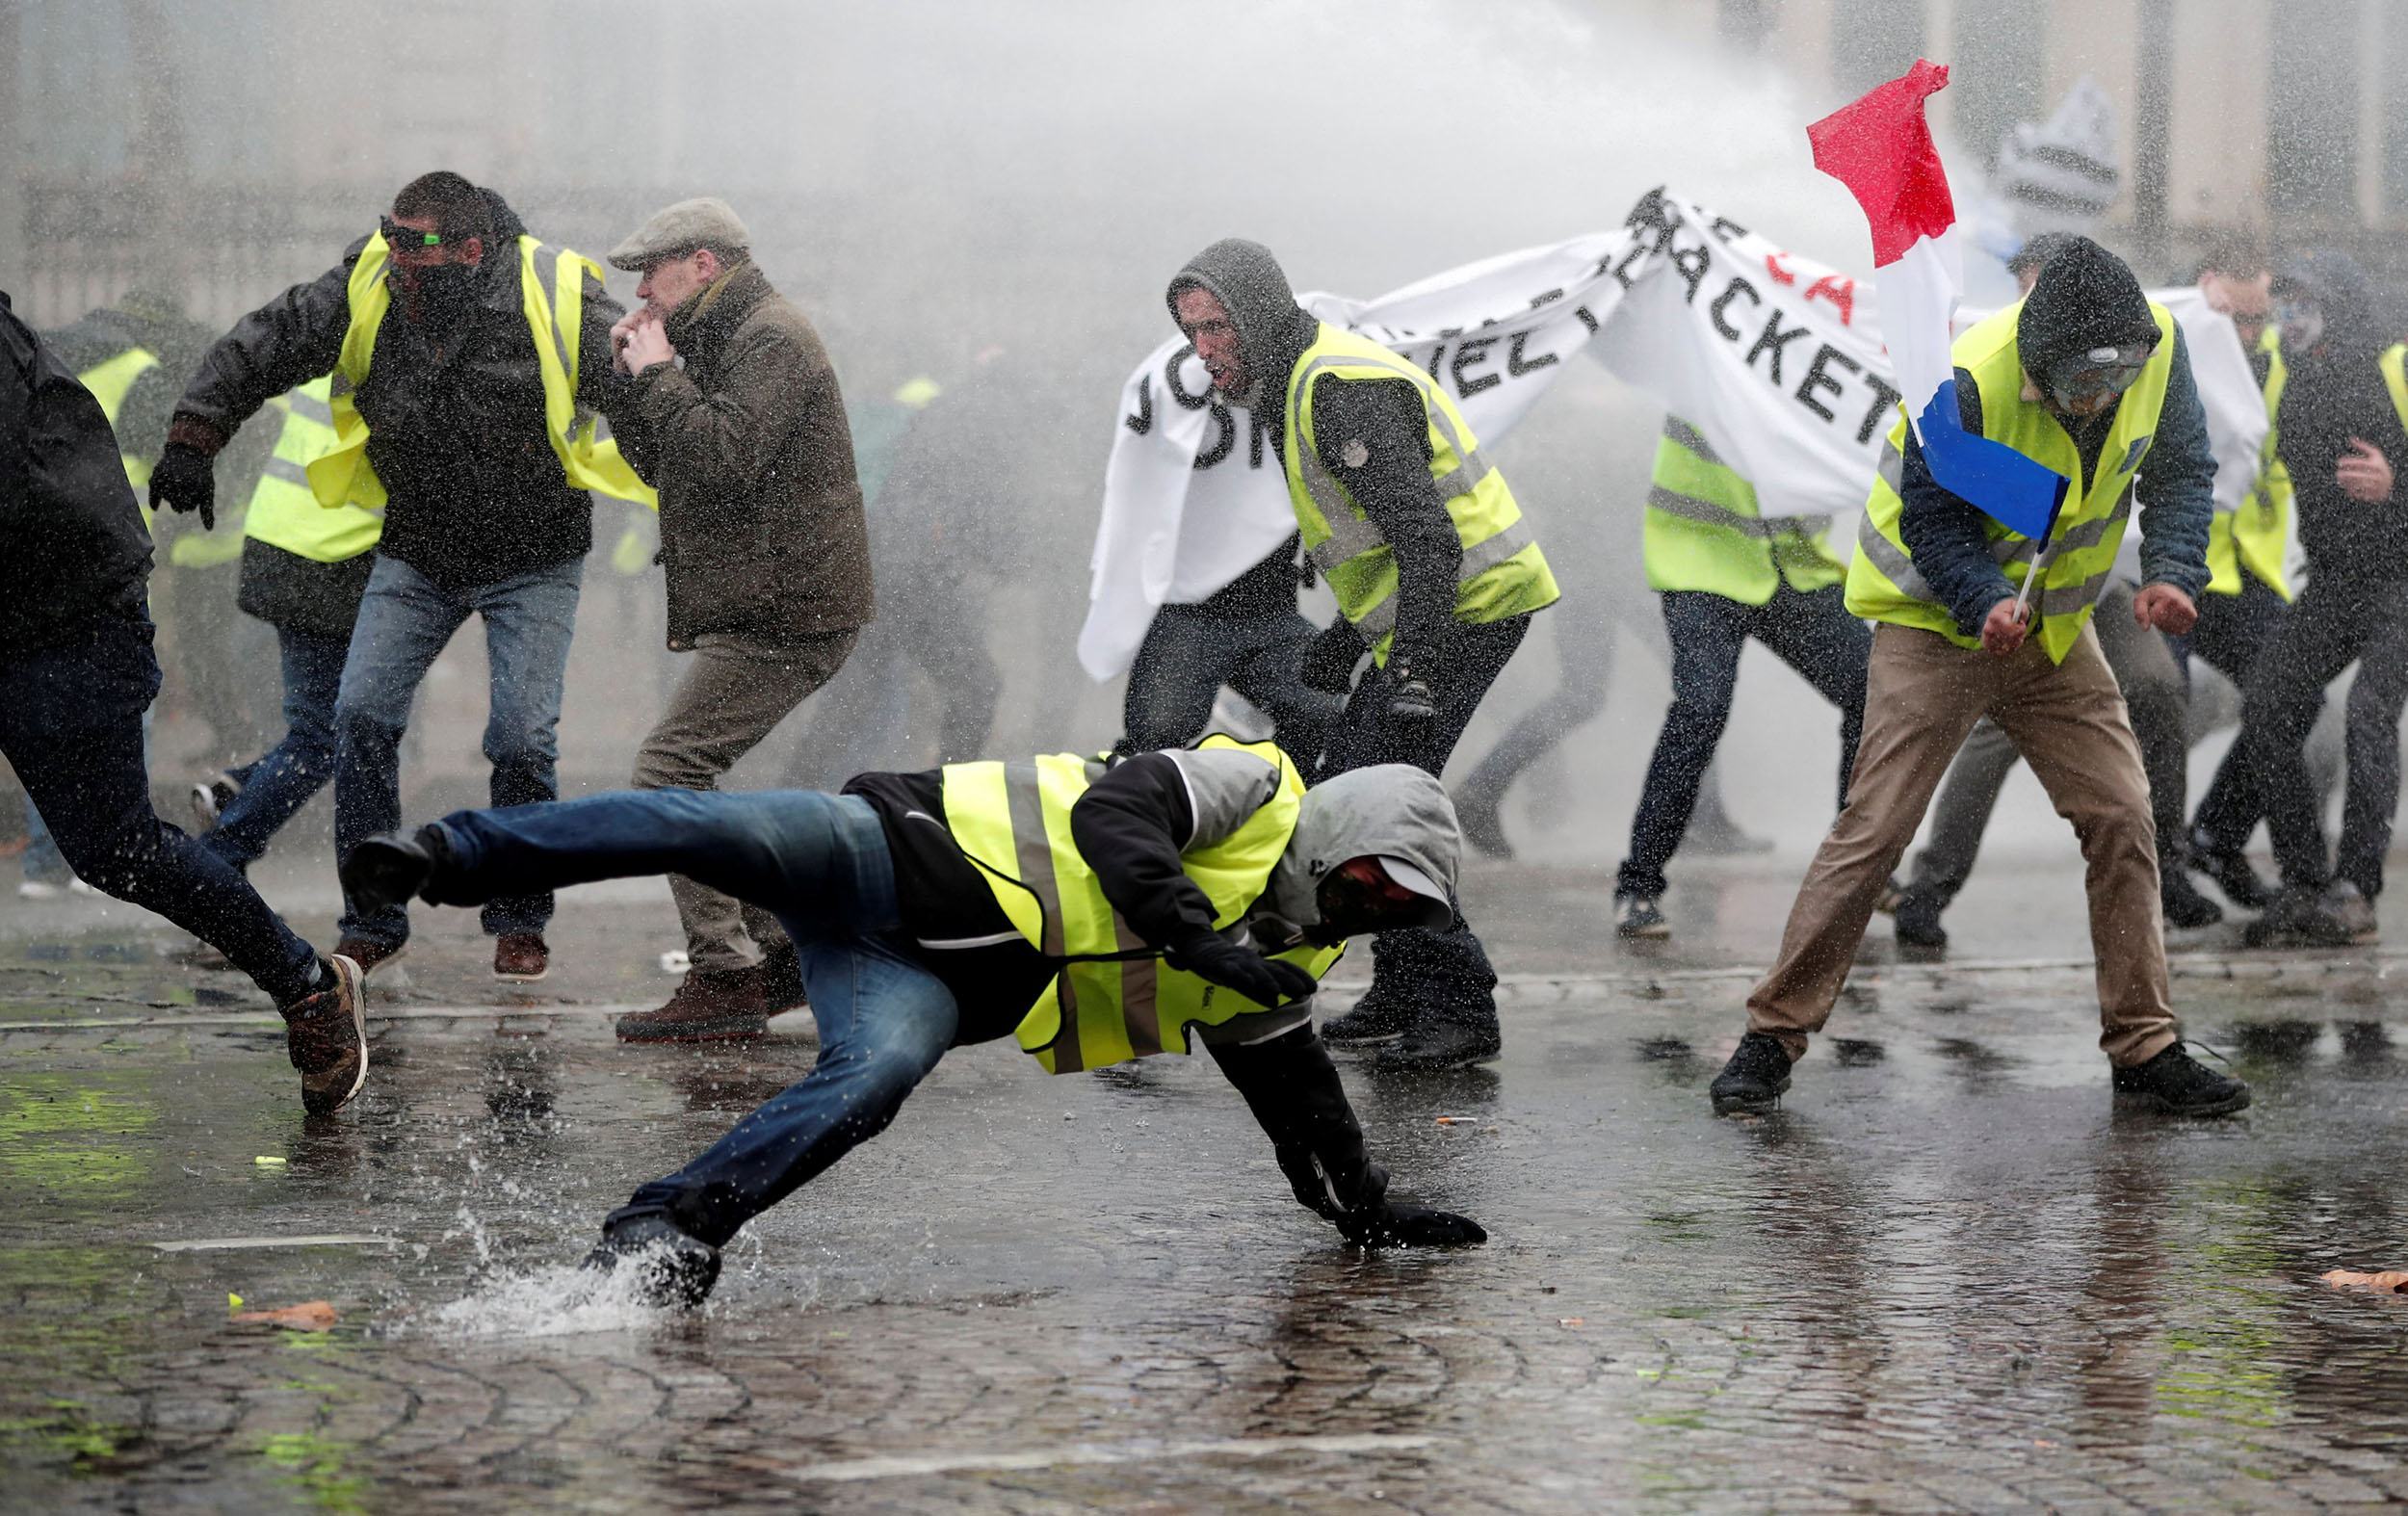 Who are France's 'Yellow Jacket' protesters and what do they want?